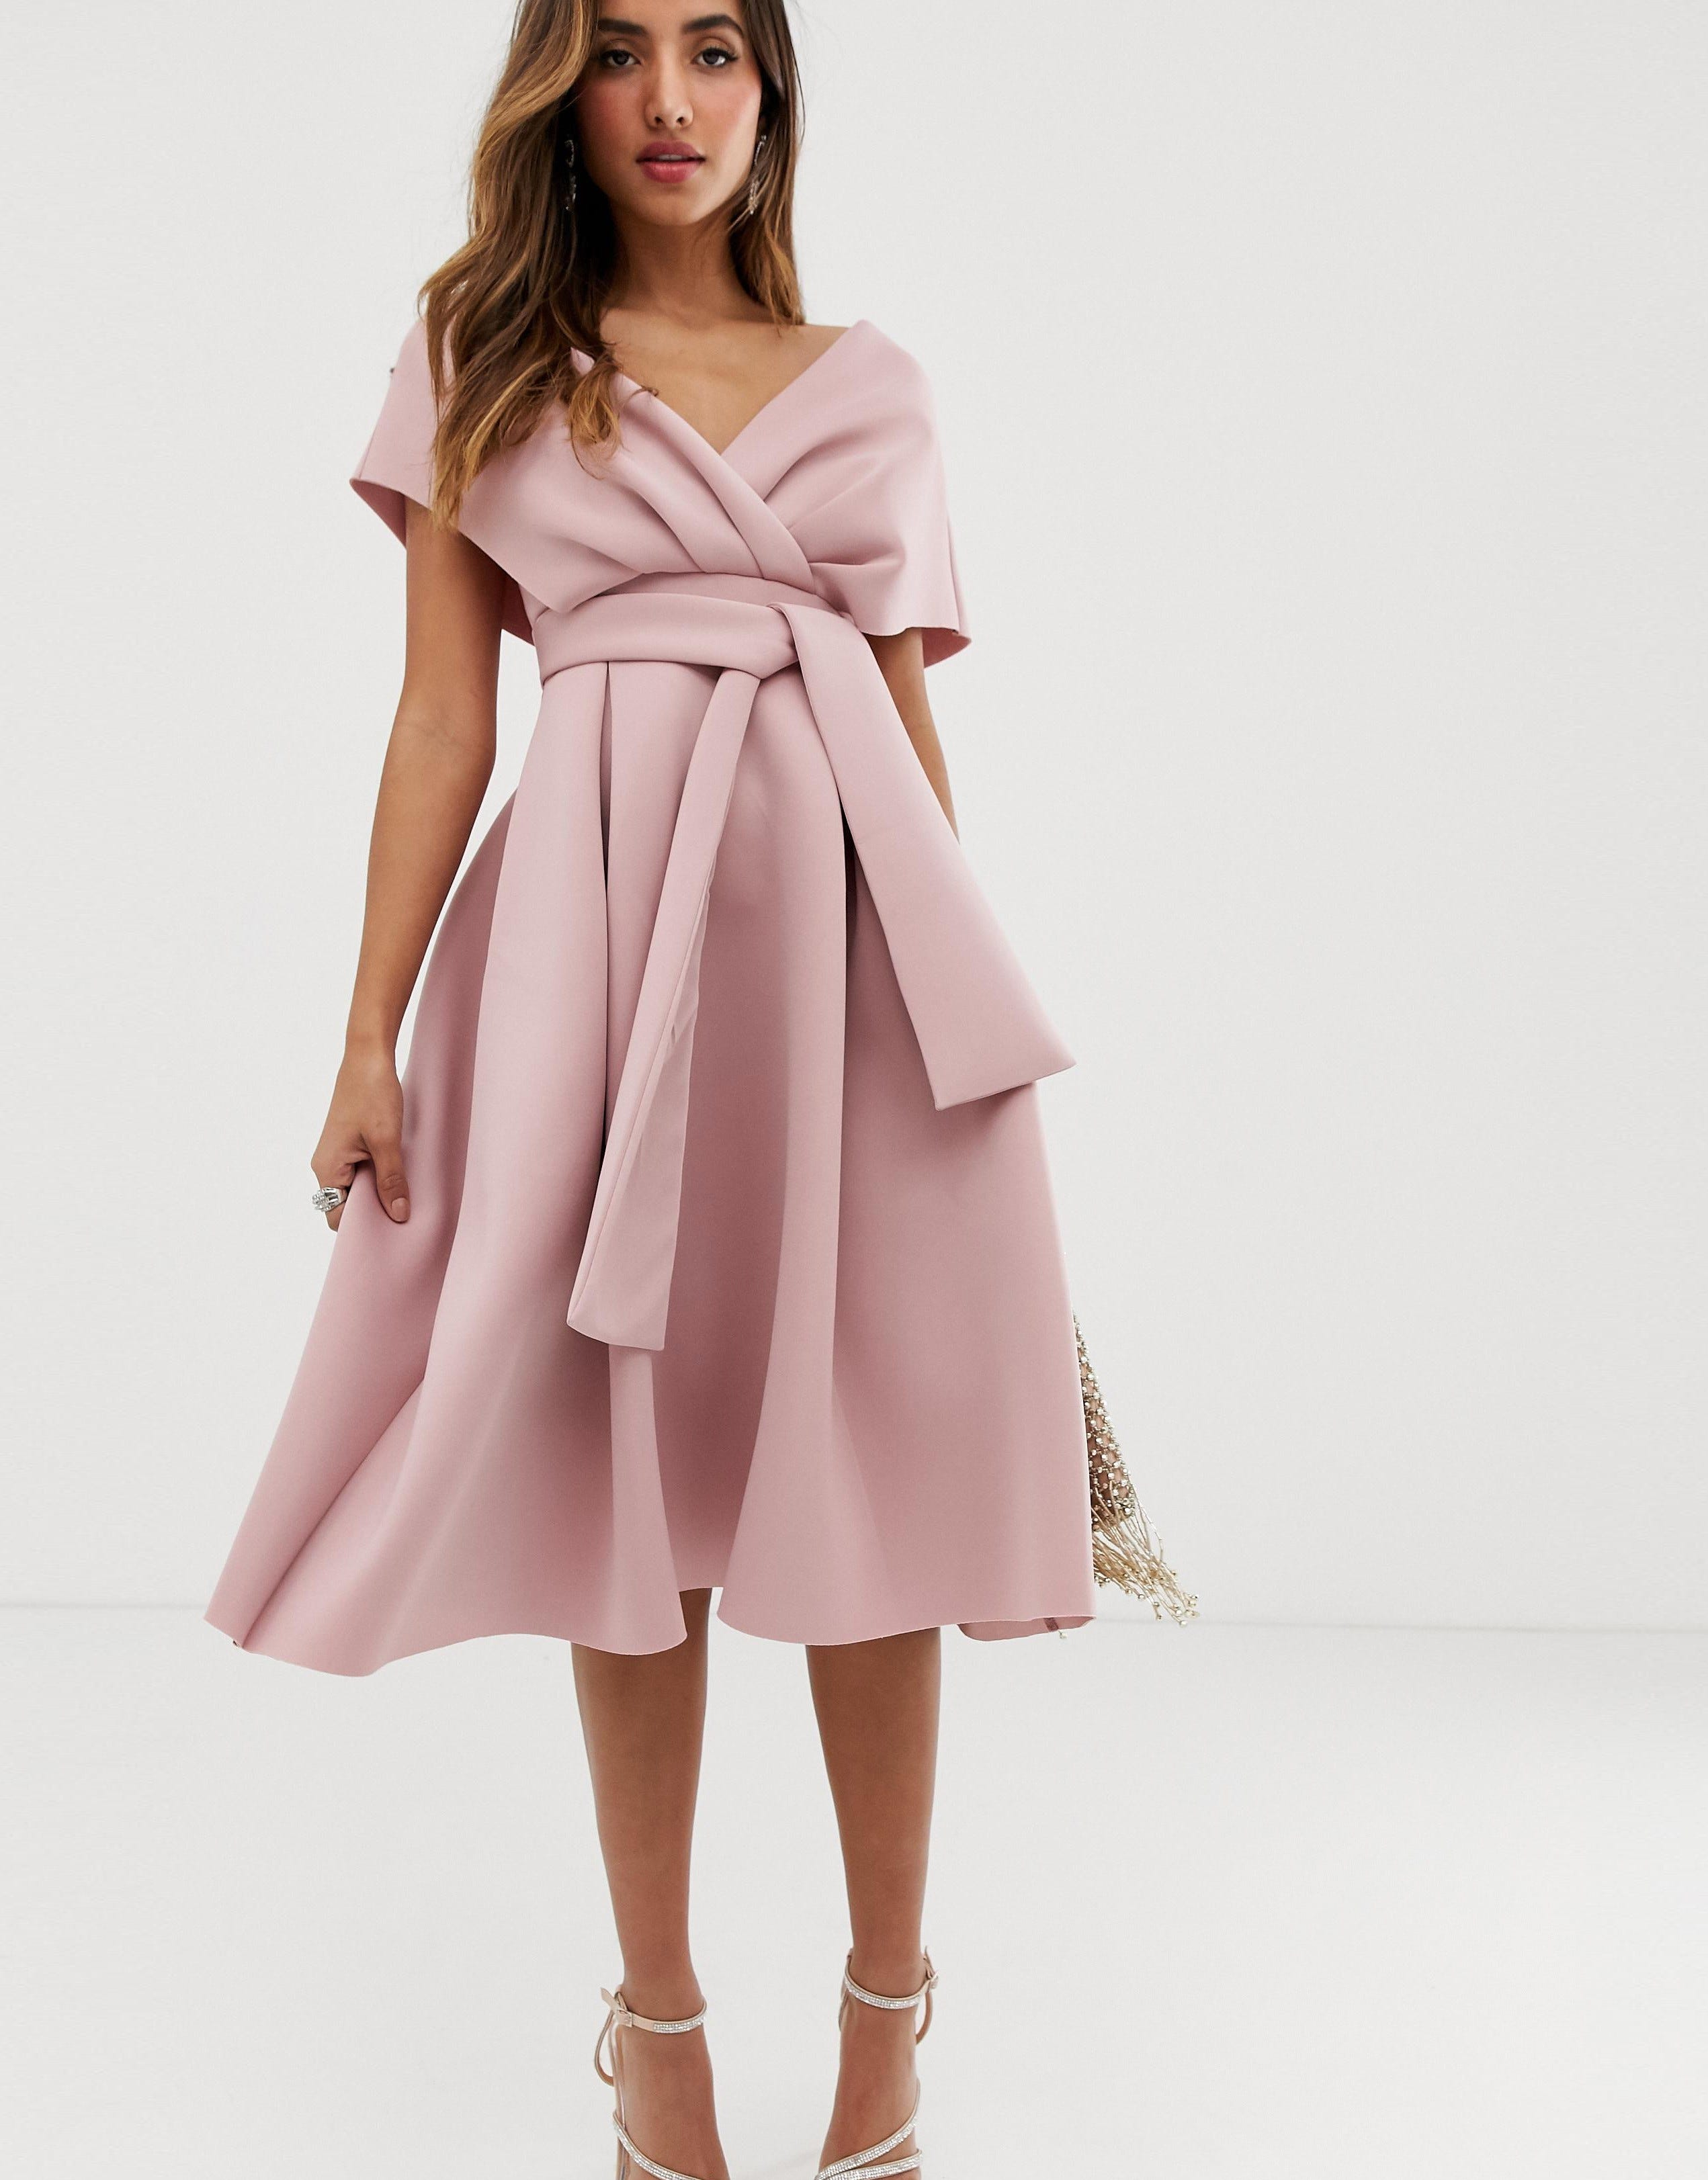 3a7df703d Popular Fashion Items On ASOS, Best Selling Summer 2019